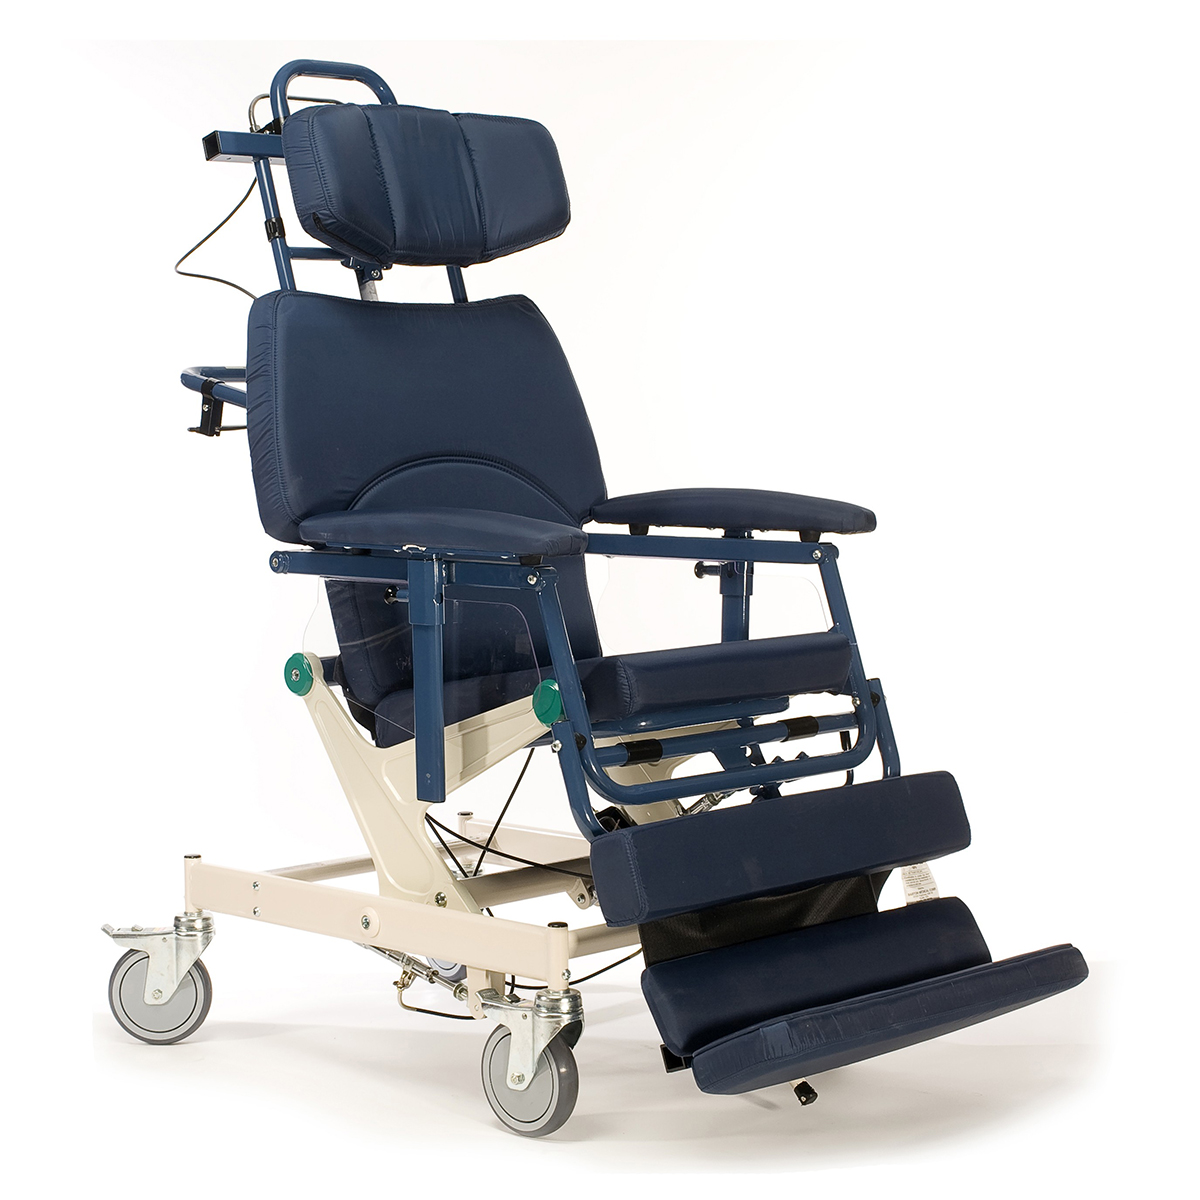 Wheel Chair Rentals Barton Medical Convertible Chair Rental In Los Angeles